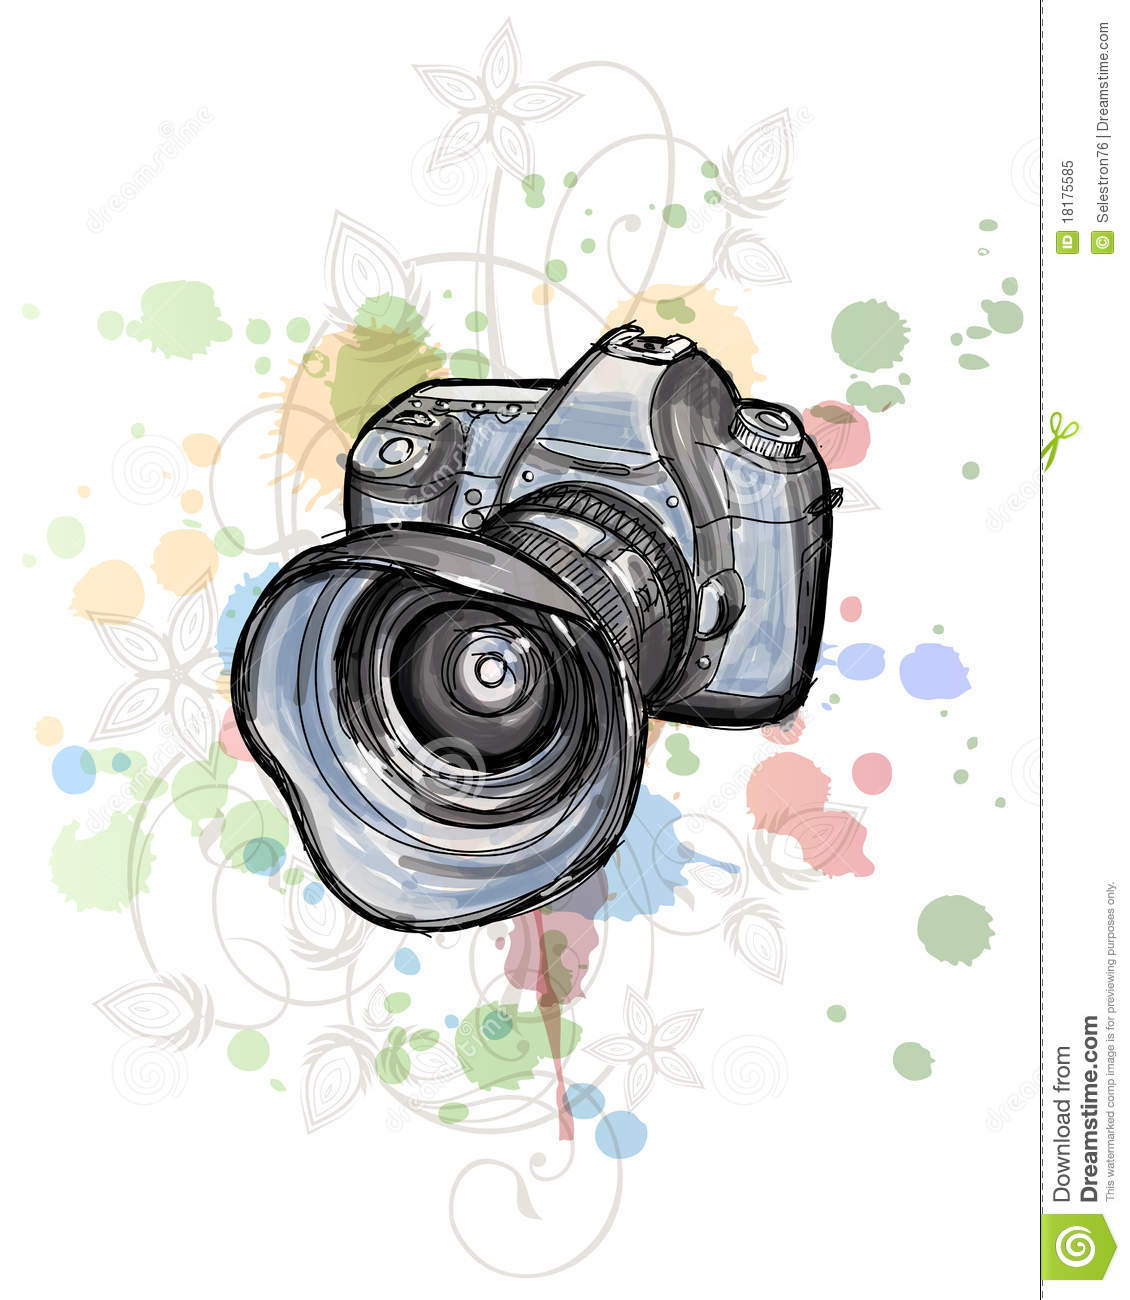 Dslr Camera With Girl Wallpaper Color Sketch Of A Digital Photo Camera Stock Vector